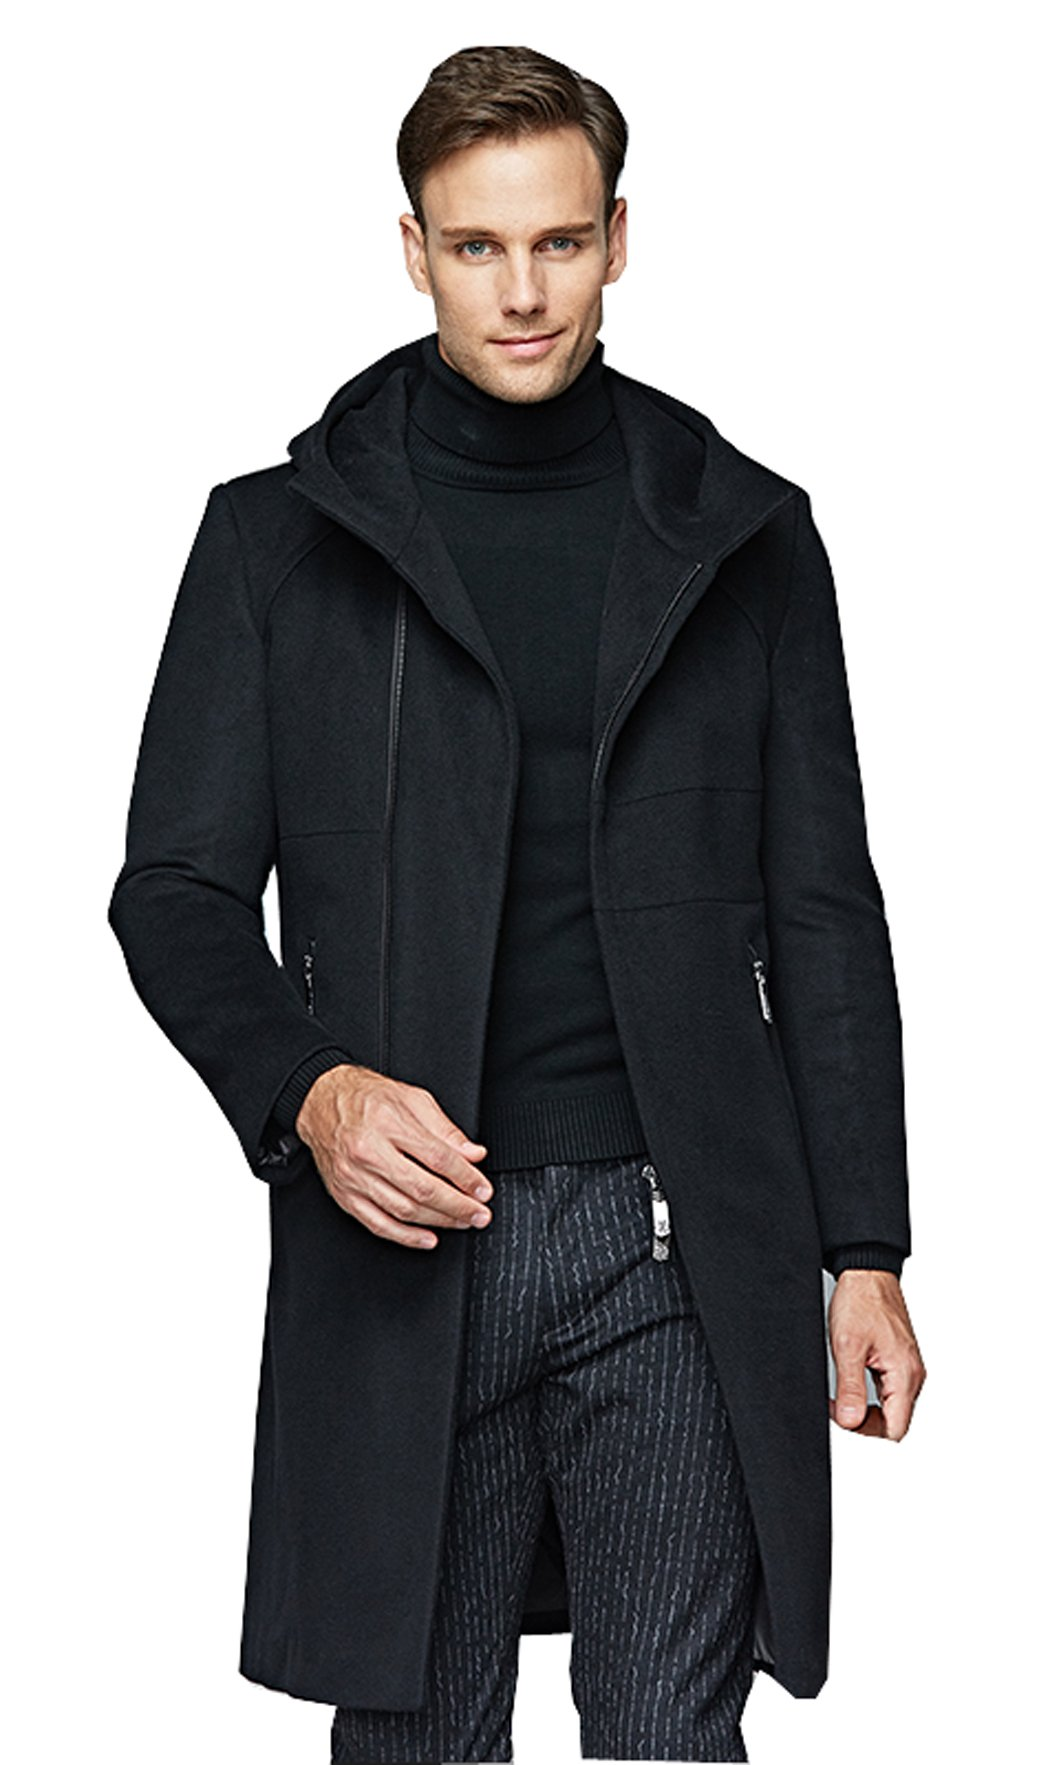 UNbox Mens Winter Wool French Jackets Business Fit Hood Overcoat Black M